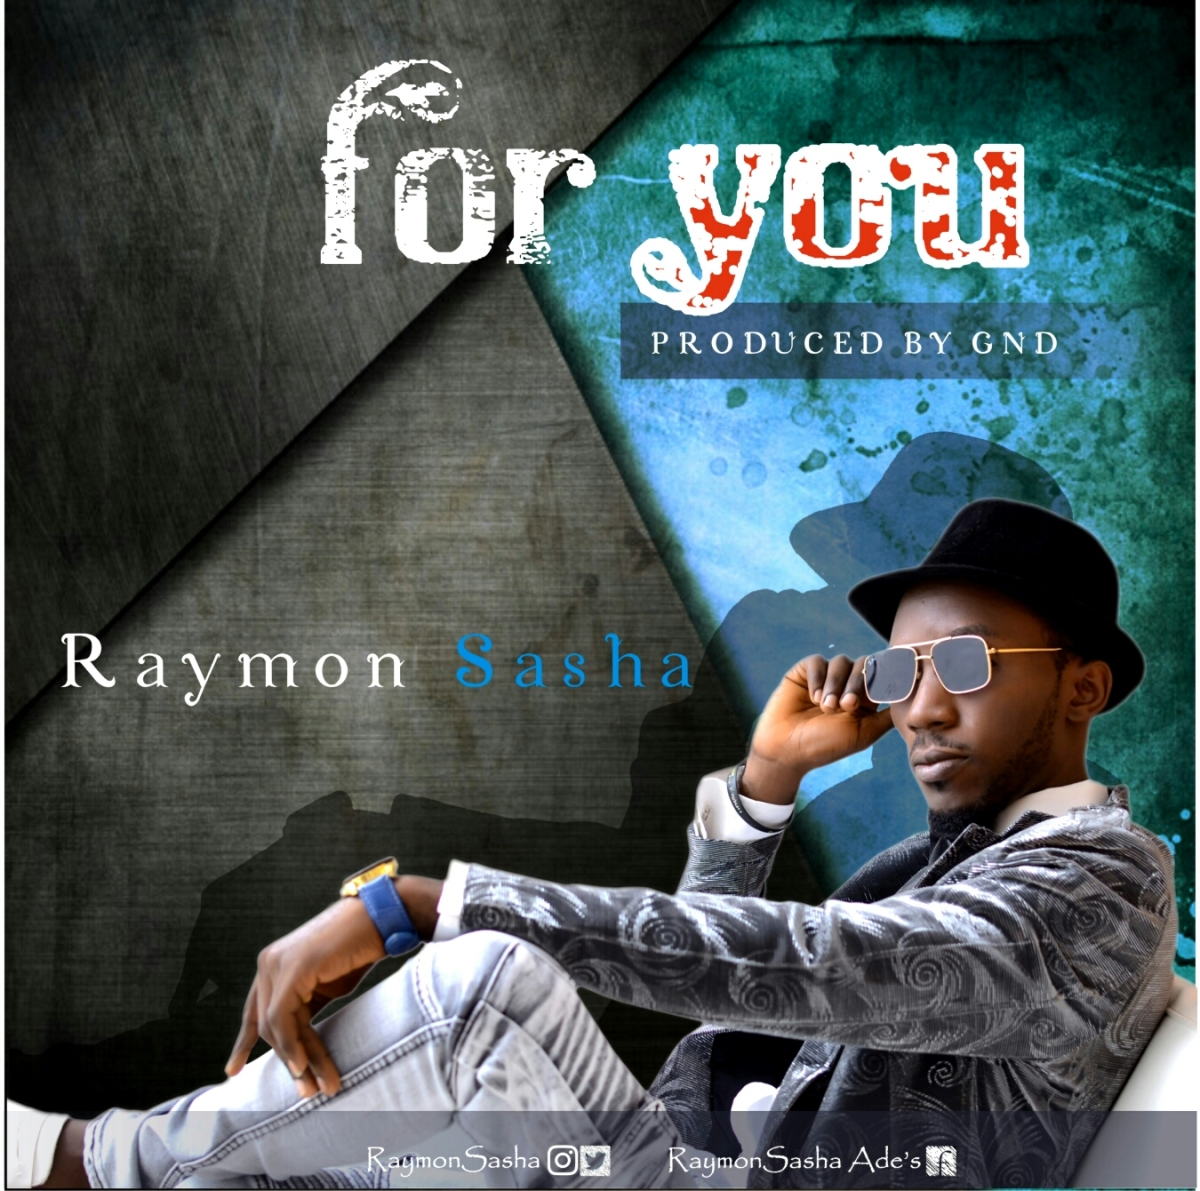 Raymon Sasha - For You | http://bit.ly/2EEeka2 | @RaymonSasha | #UberTalksMusic